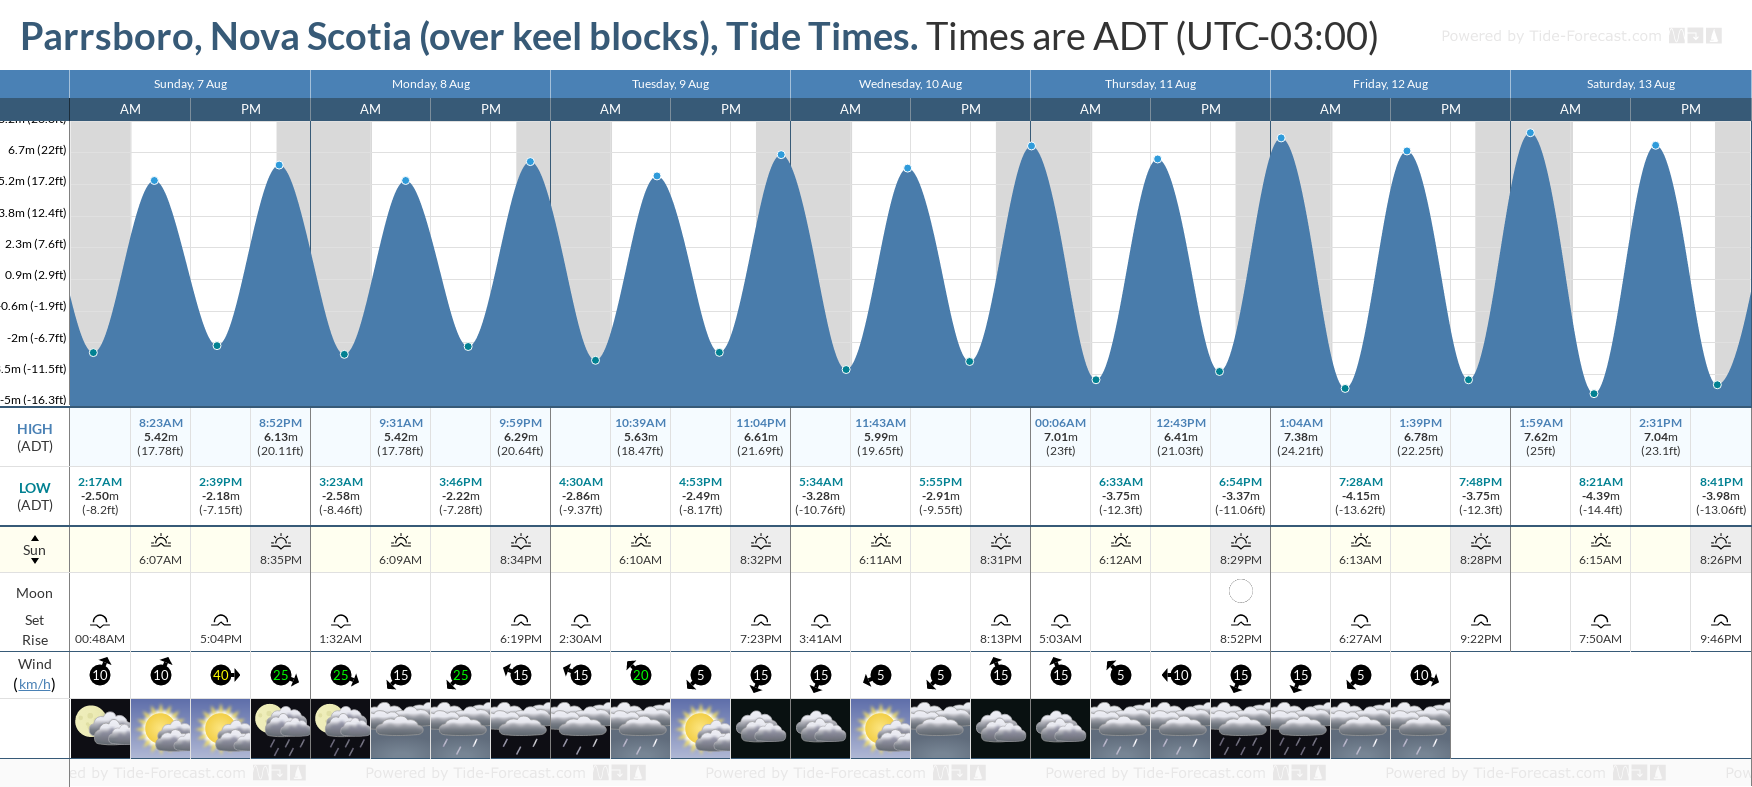 Parrsboro, Nova Scotia (over keel blocks) Tide Chart including high and low tide tide times for the next 7 days